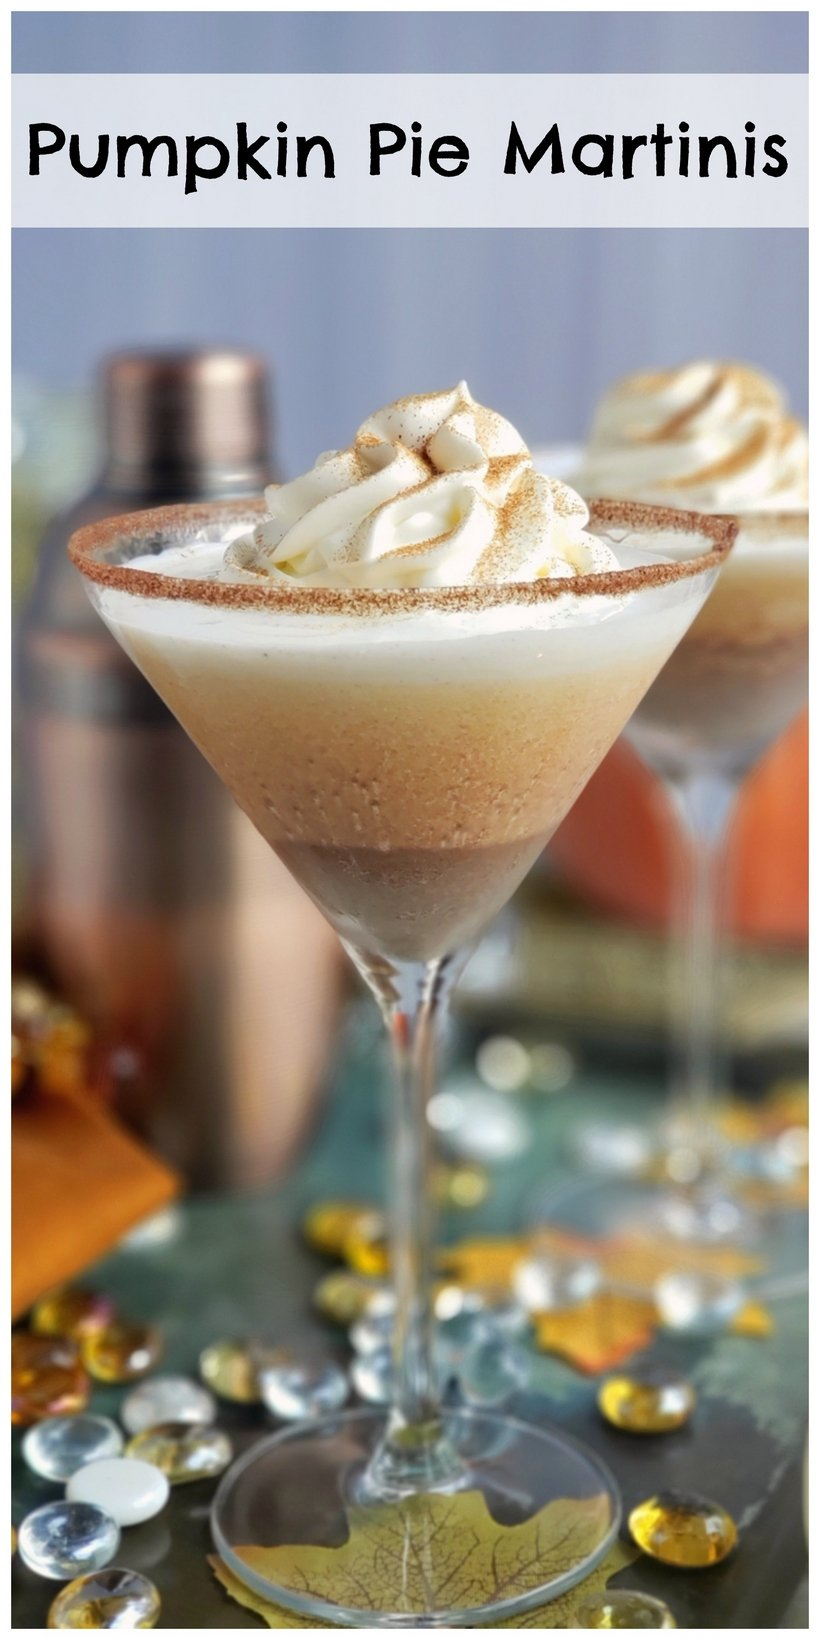 This Pumpkin Pie Martini recipe is a guaranteed hit of any holiday cocktail party. This made for Thanksgiving cocktail puts a whole new spin on what you should be drinking this fall. If you're hosting a Thanksgiving cocktail party this is a must serve! #pumpkinpiemartini #pumpkinpiemartinirecipe #pumpkinpiemartinieasy #pumpkinpiecocktail #pumpkinpiecocktailrecipe #thanksgivingcocktailrecipe #thanksgivingcocktail #vodkacocktailsfall #partycocktail #holidaypartycocktail #thanksgivingcocktailparty  via @cmpollak1